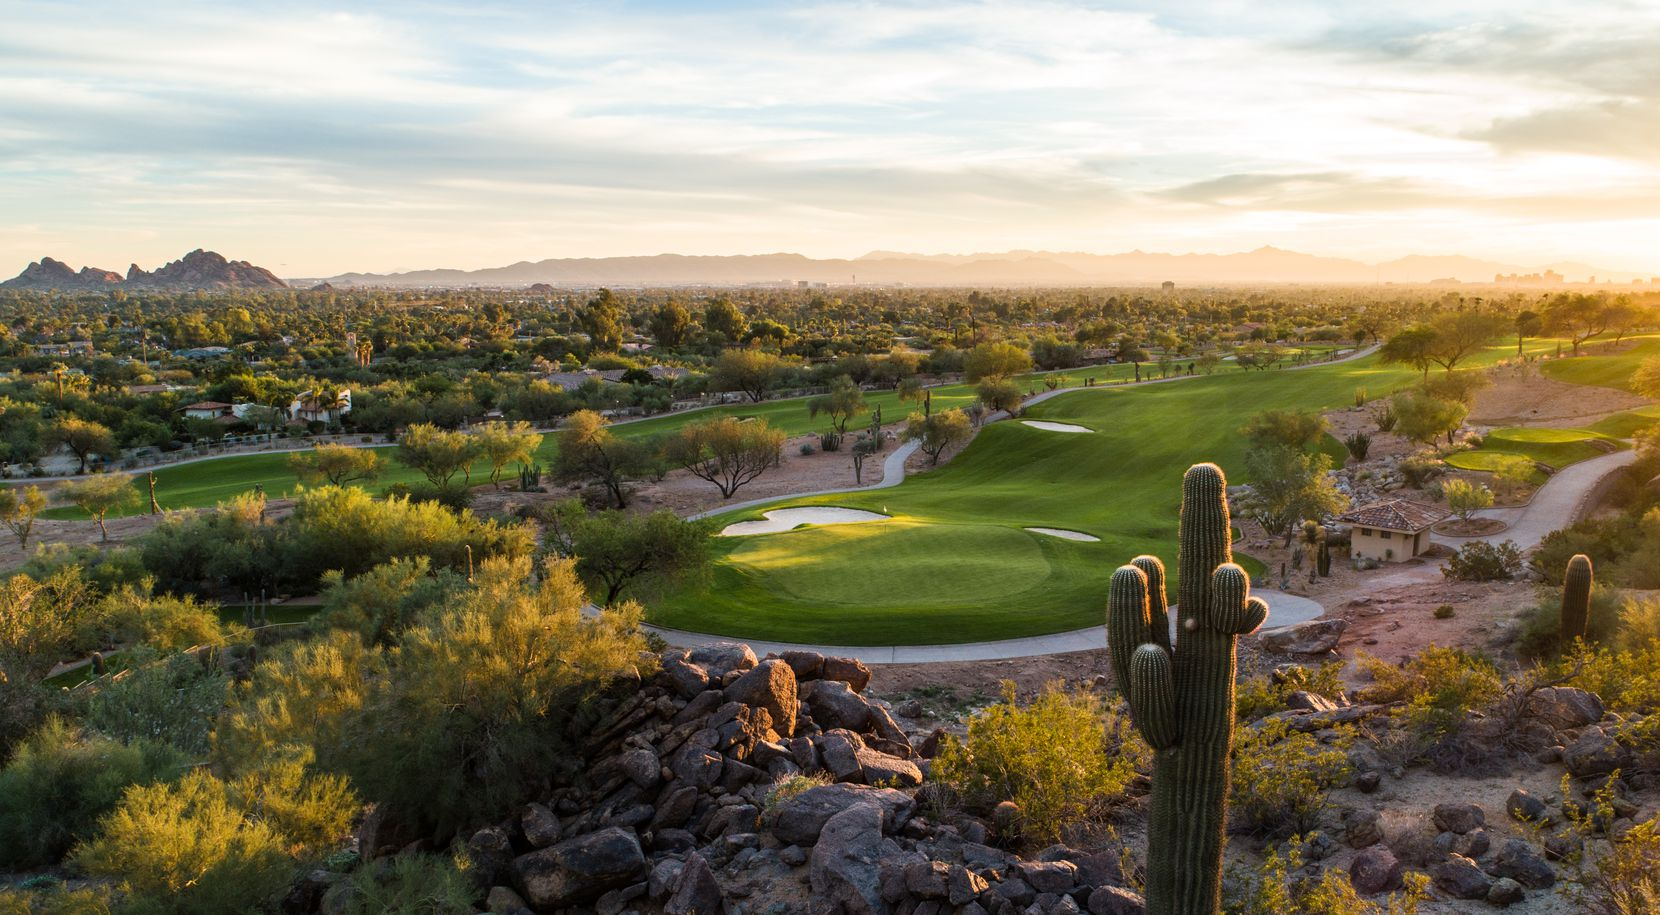 Hole 15 offers a panoramic view at The Phoenician, which is among the Phoenix-area hotels that have recently undergone major renovation projects.